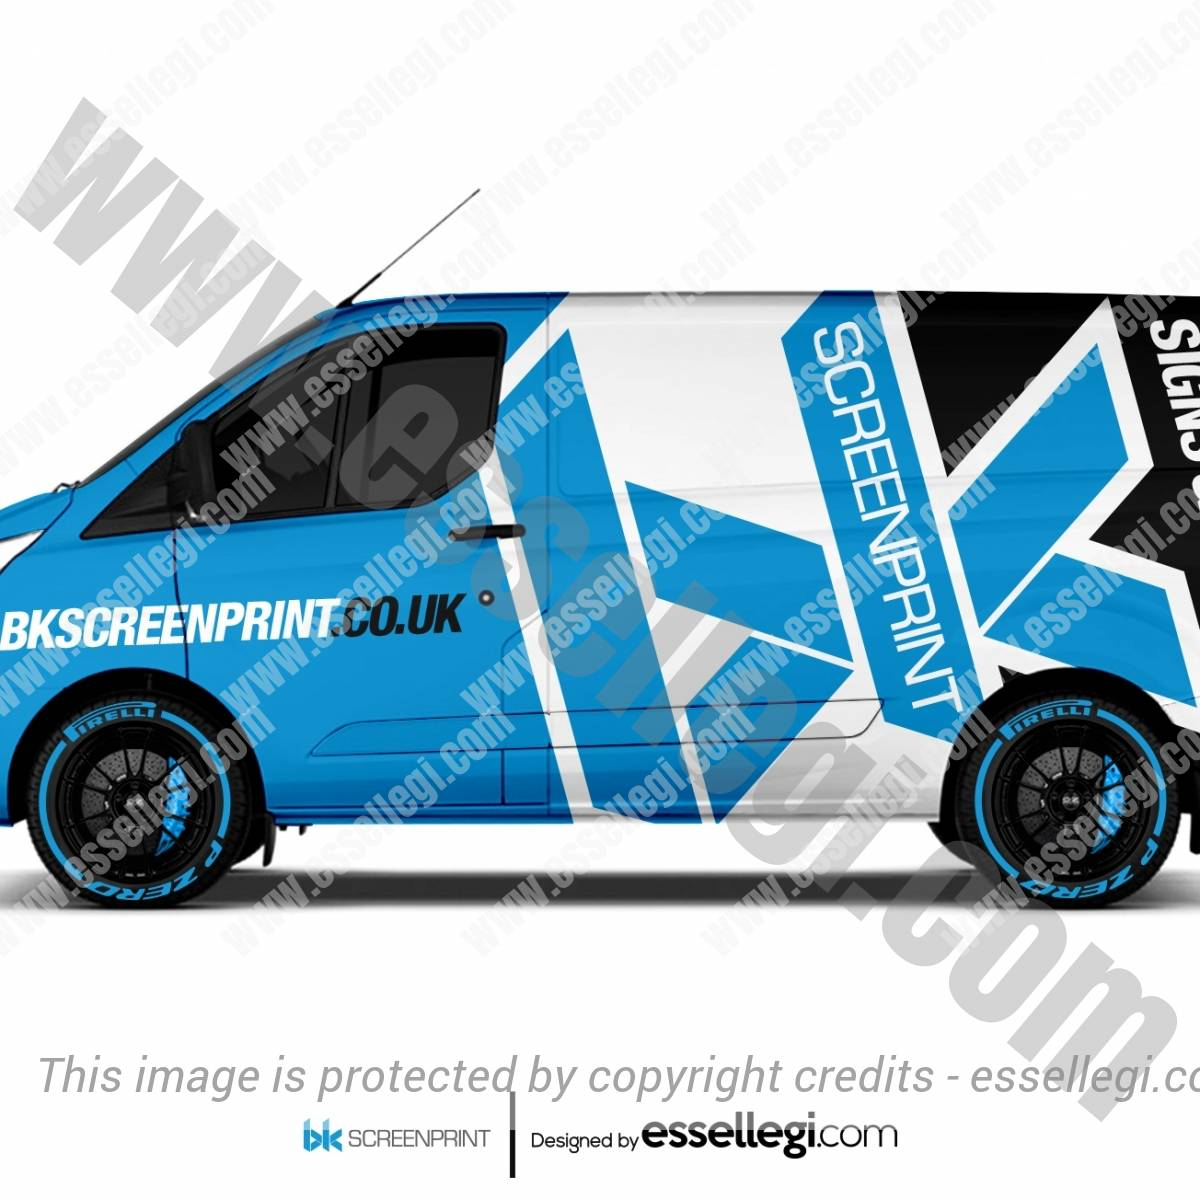 BK SCREENPRINT | VAN WRAP DESIGN 🇬🇧